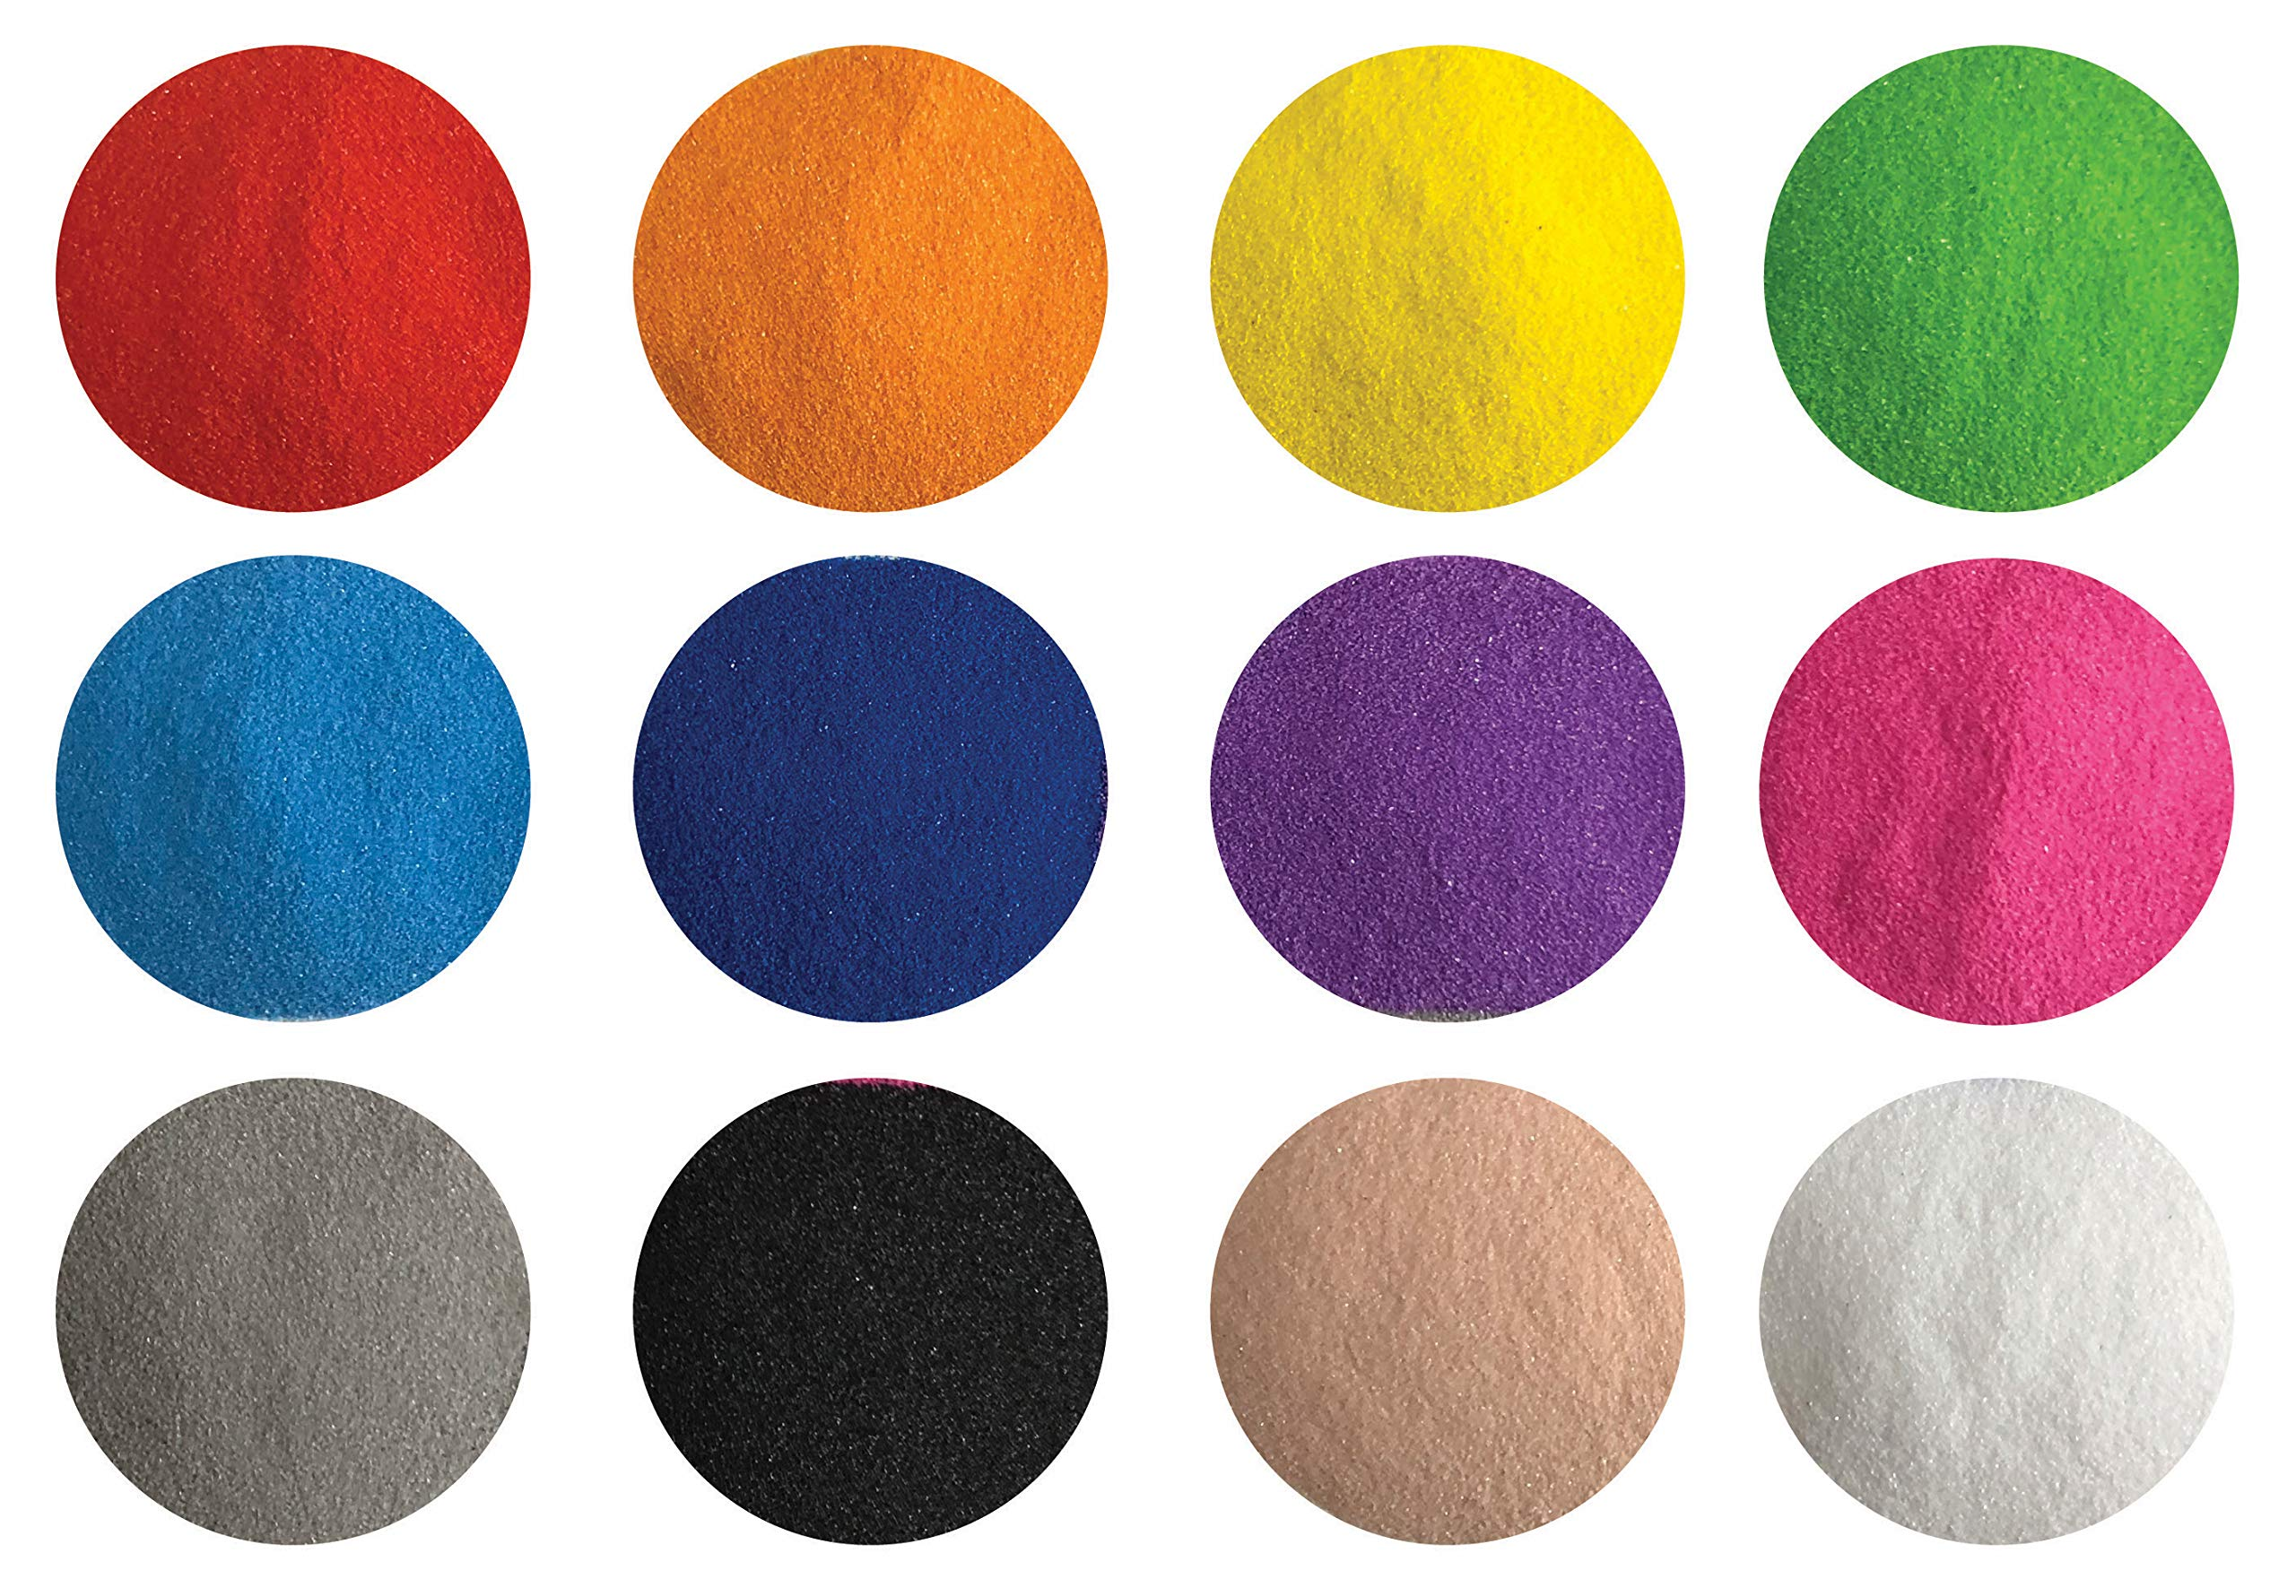 CreativeSandStore Fine Sand, Colored Sand for Sand Art & Crafts, Decorative Sand for Terrariums & Sand Paintings (12 Colors 2.64 LBS) by CreativeSandStore